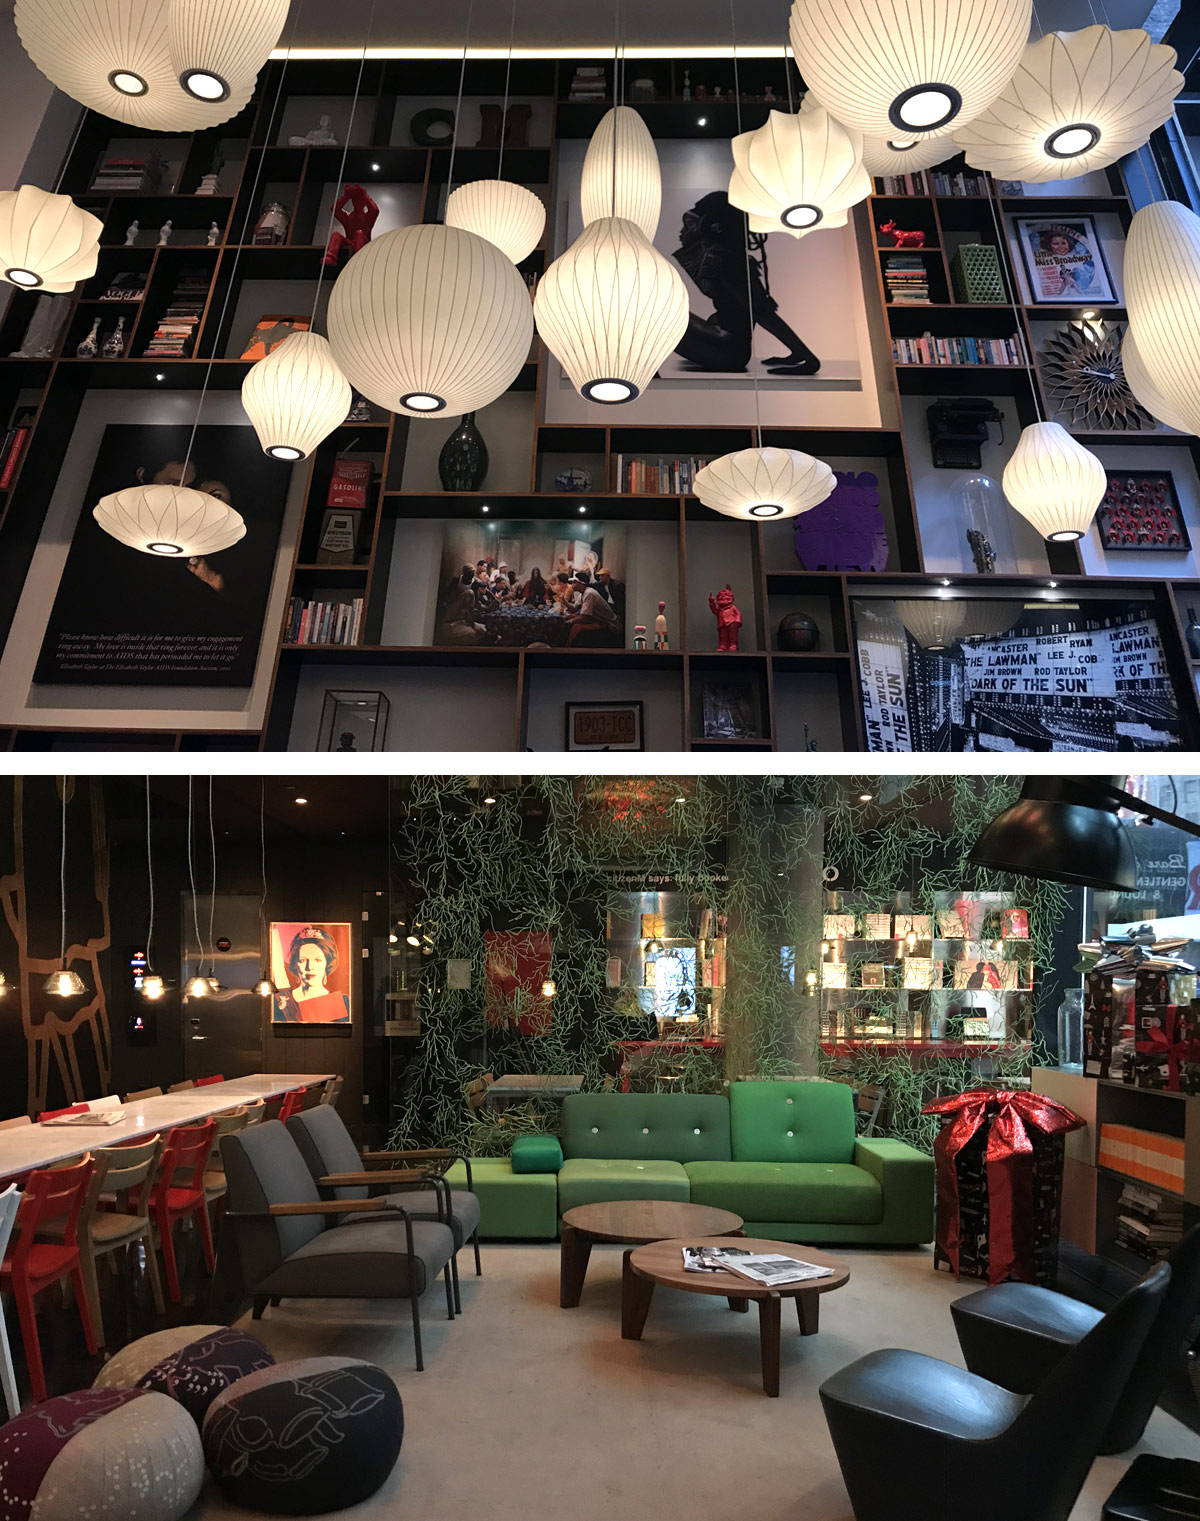 George Nelson Bubble Lamps and Vitra Furniture at the Citizen M Coffee Lounge